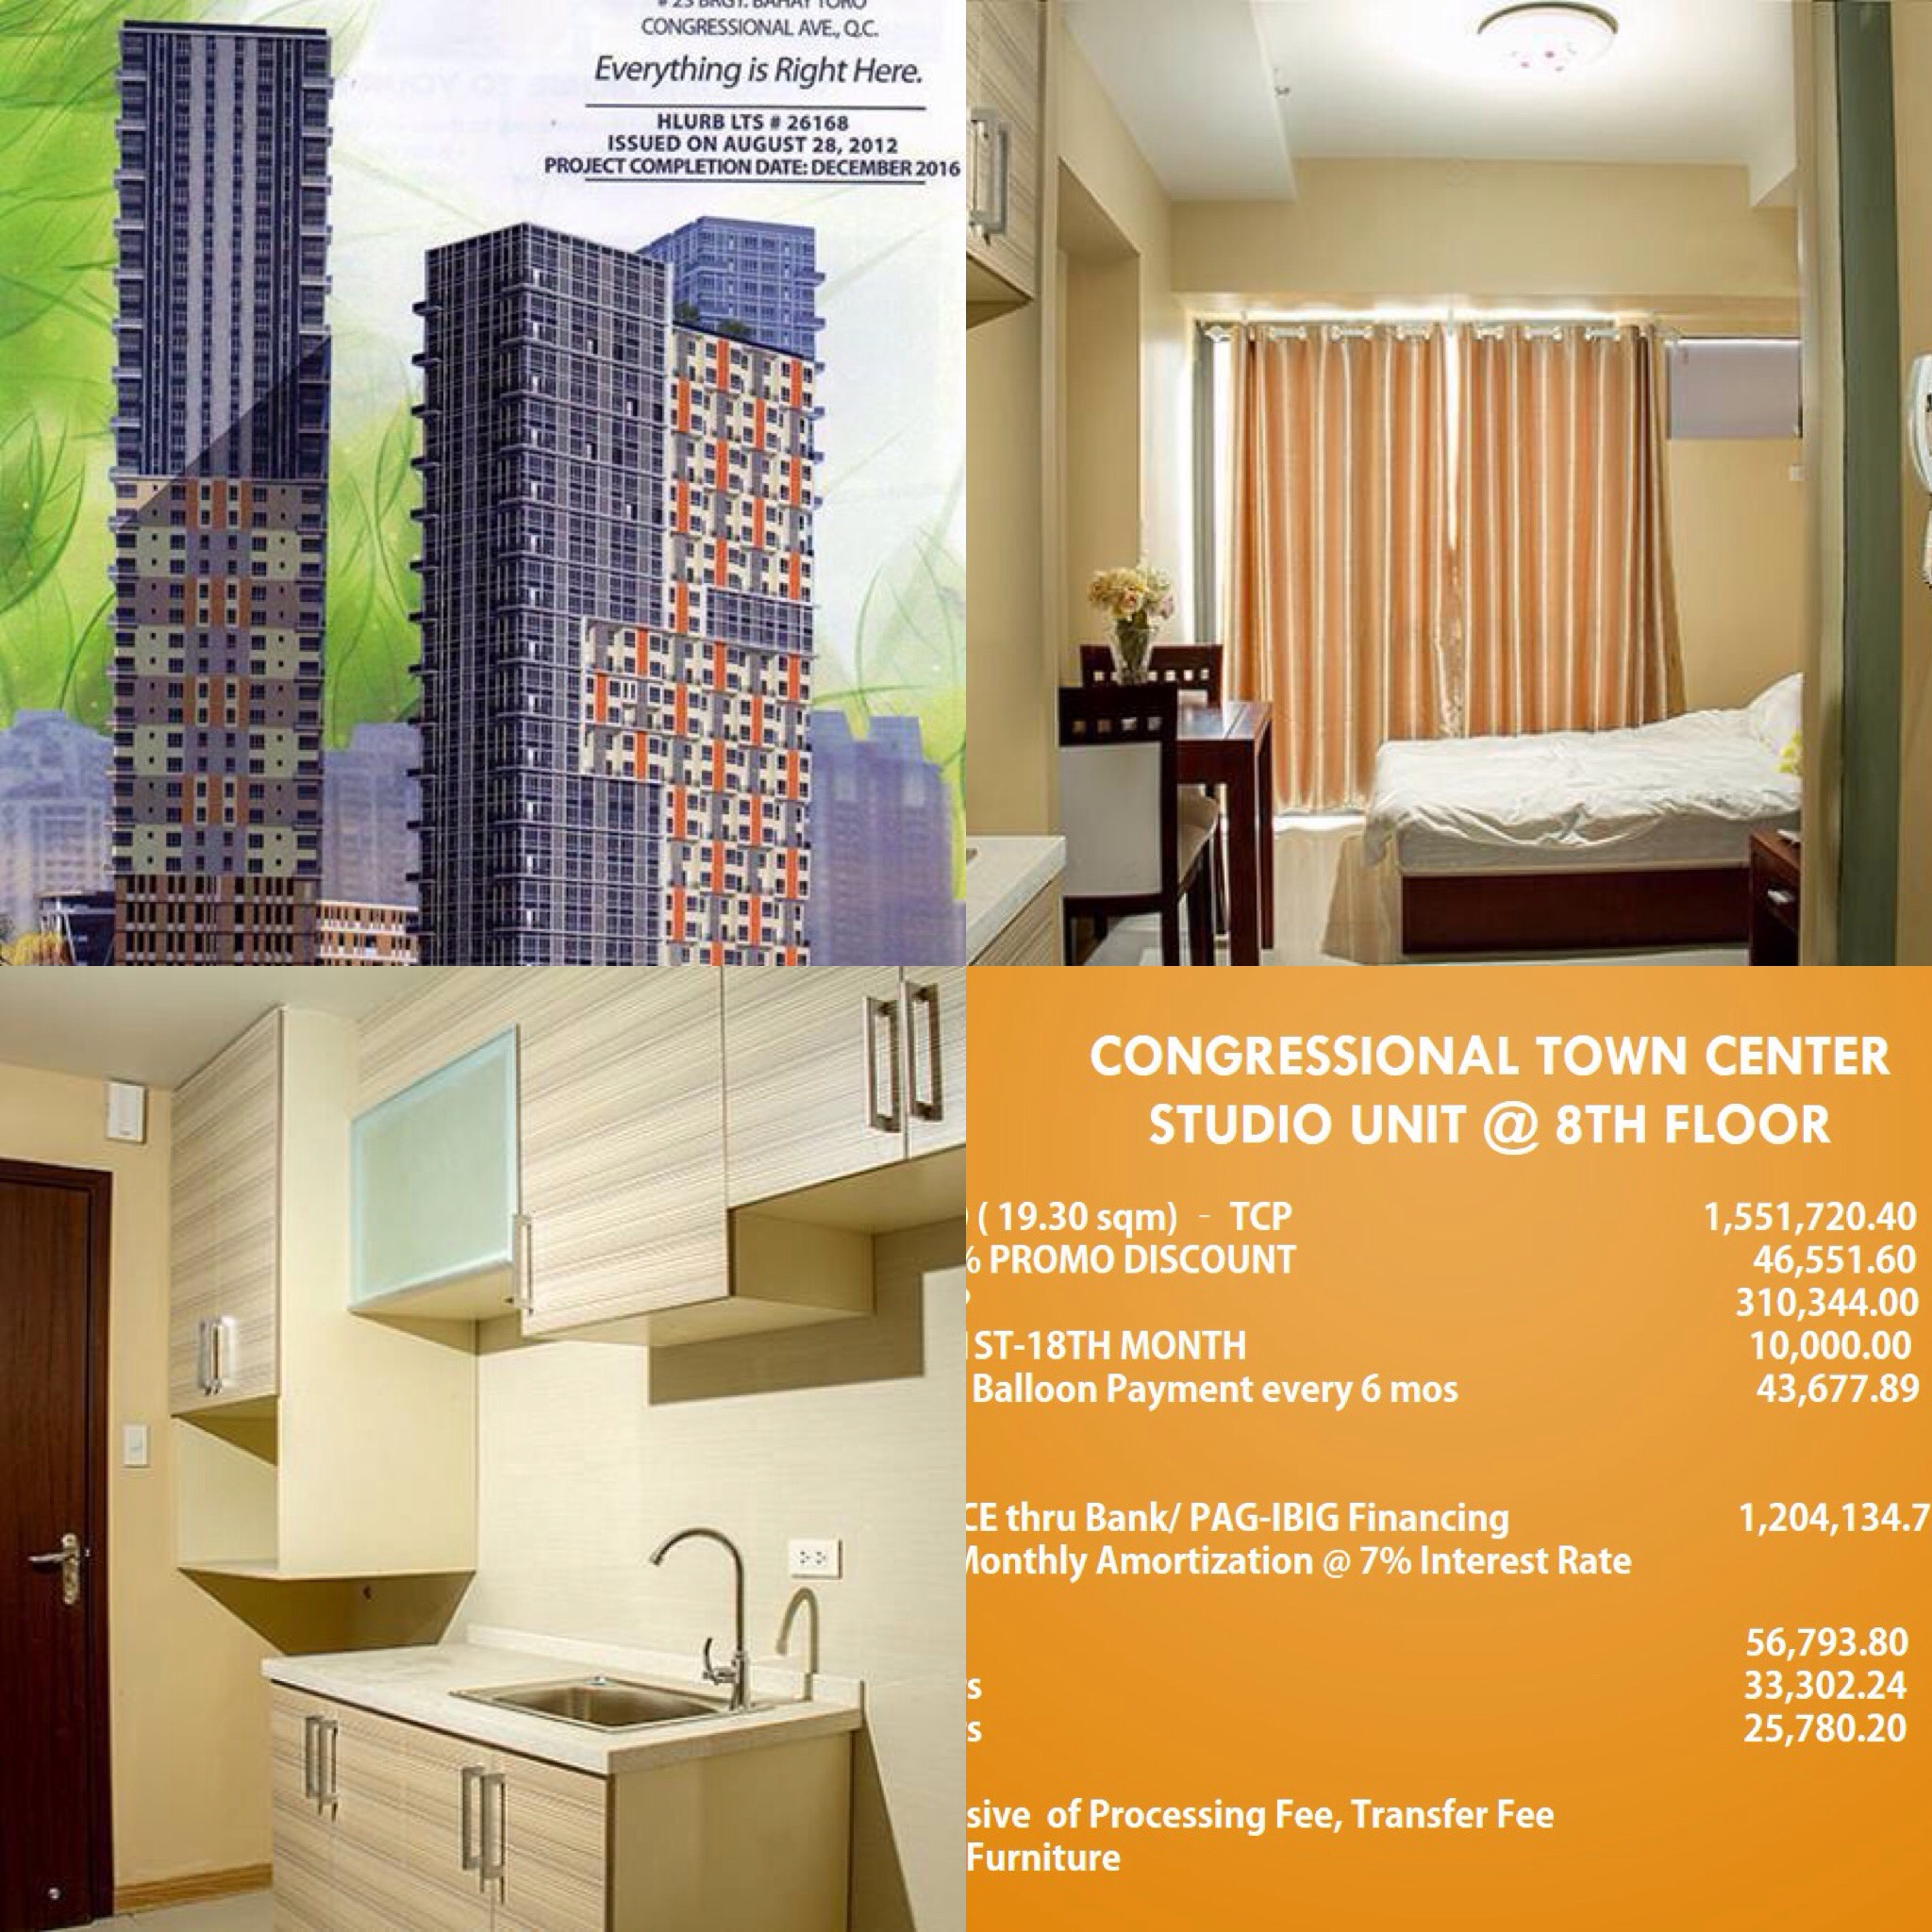 congressional condo qc for sale 09235564517 rico navarro